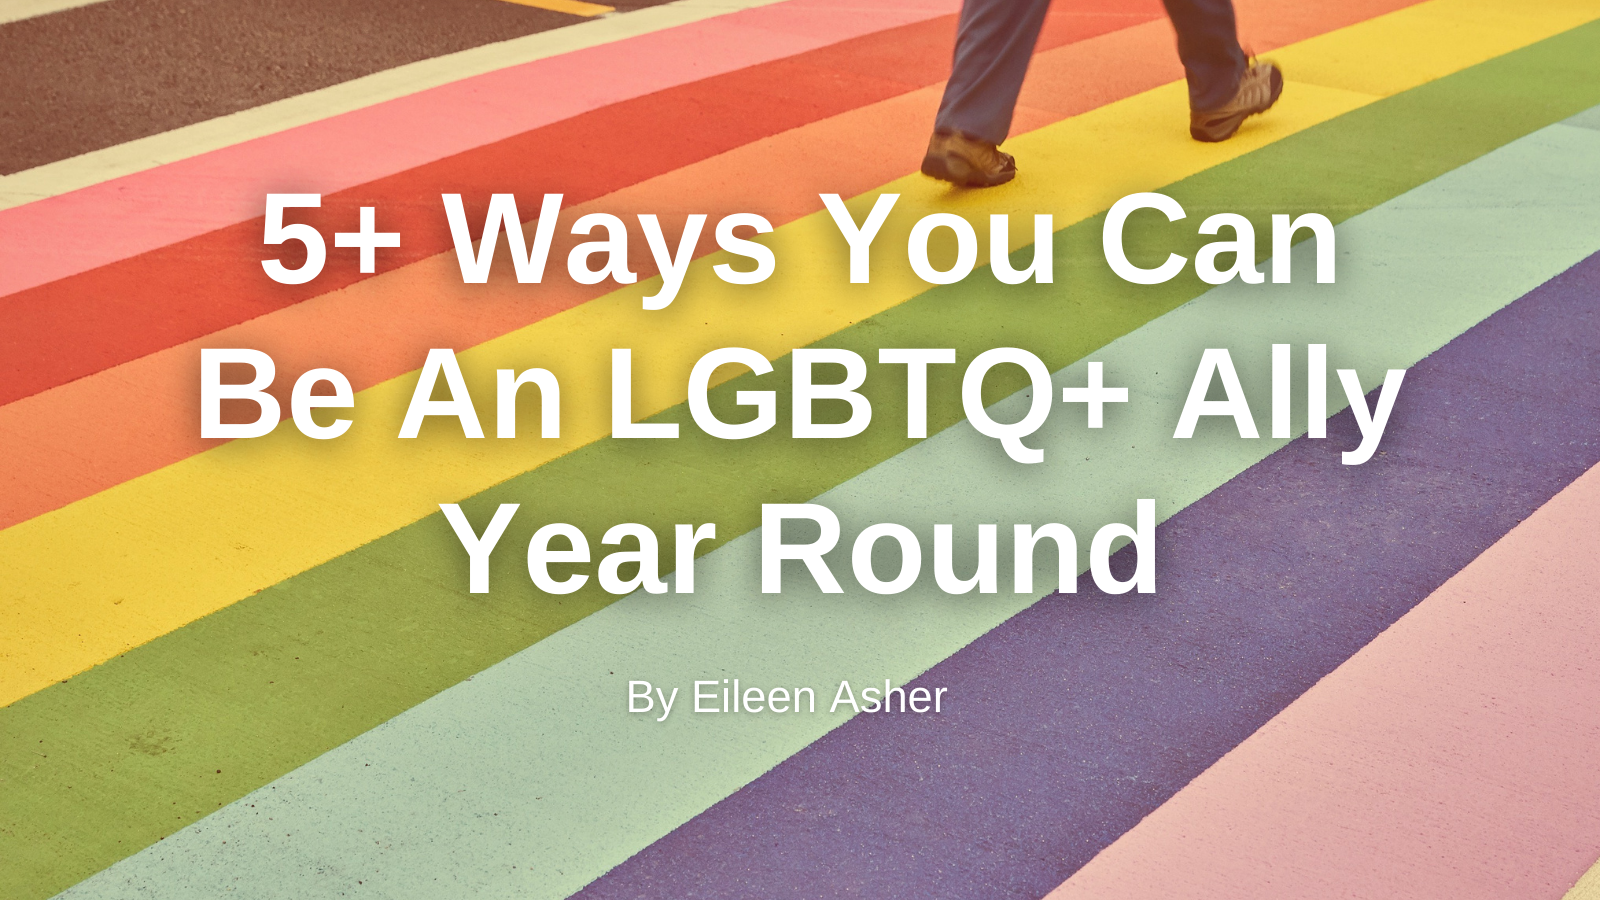 """Rainbow sidewalk and white text """"5+ Ways You Can Be An LGBTQ+ Ally Year Round By Eileen Asher"""""""